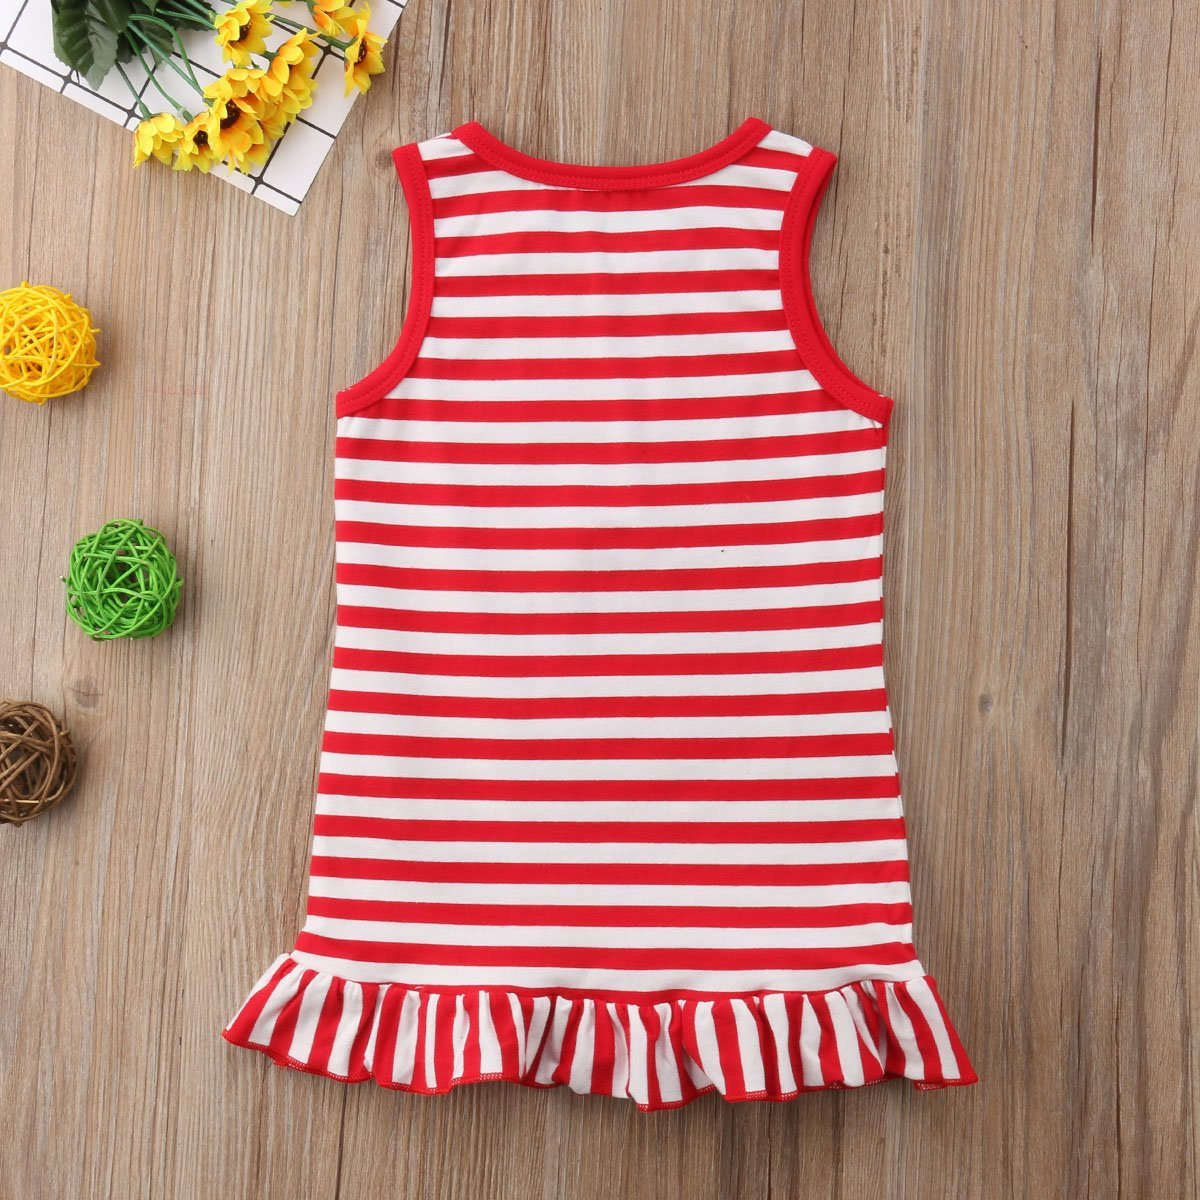 One Persent Baby Girls Cotton Ruffle Sleeveless Mini Dress Overall Sundress Playwear Outfit Clothes